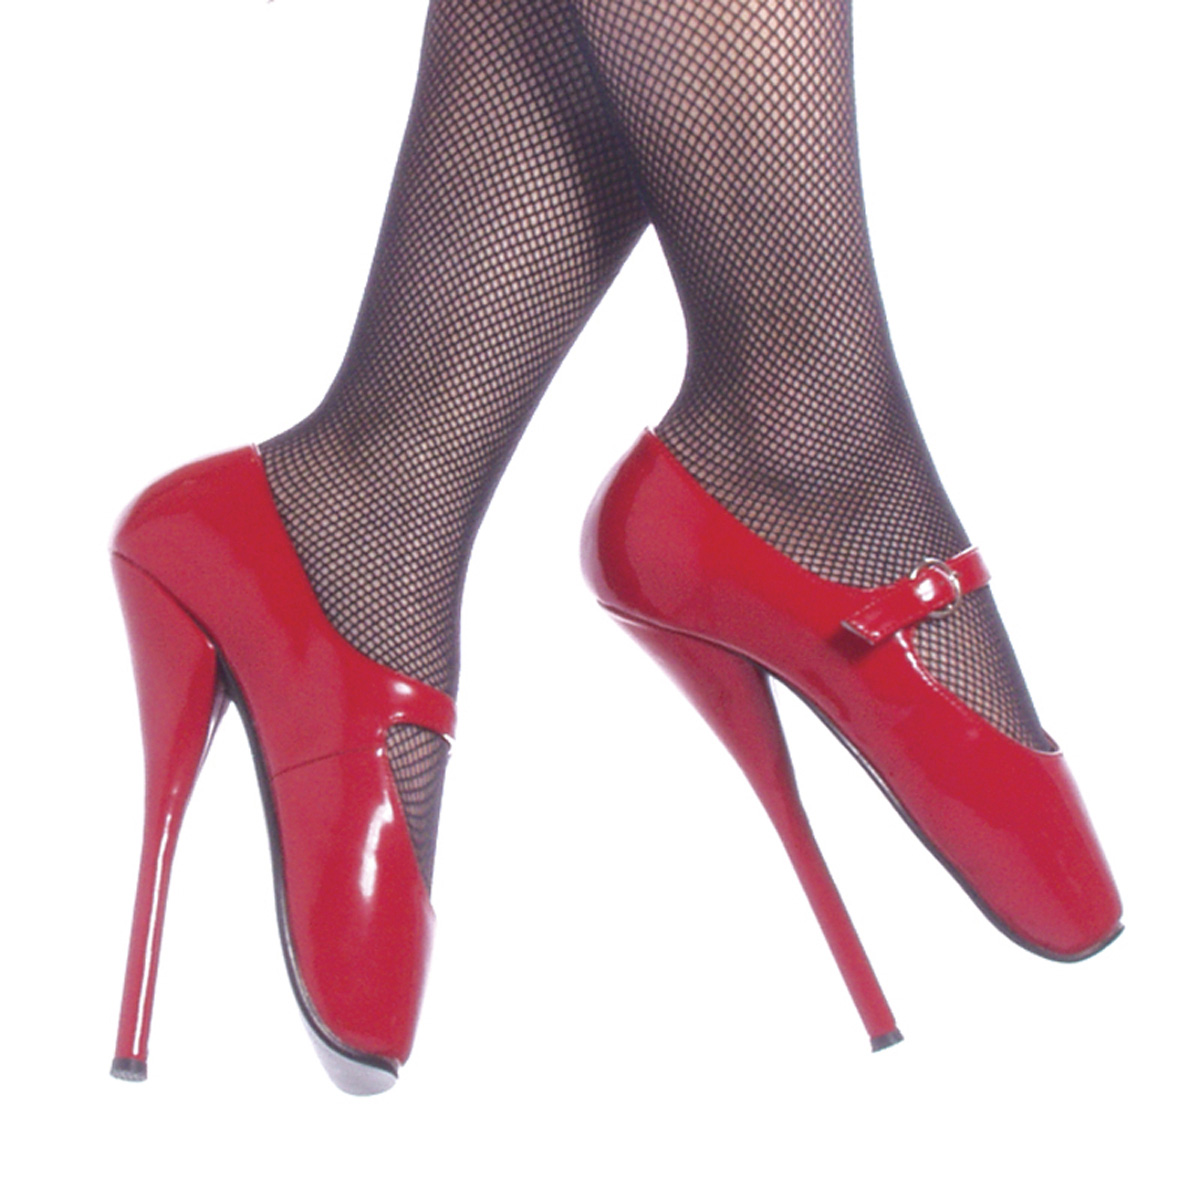 "DEVIOUS BALLET-08 7 1/2"" Heel Shoes/Red Pat"